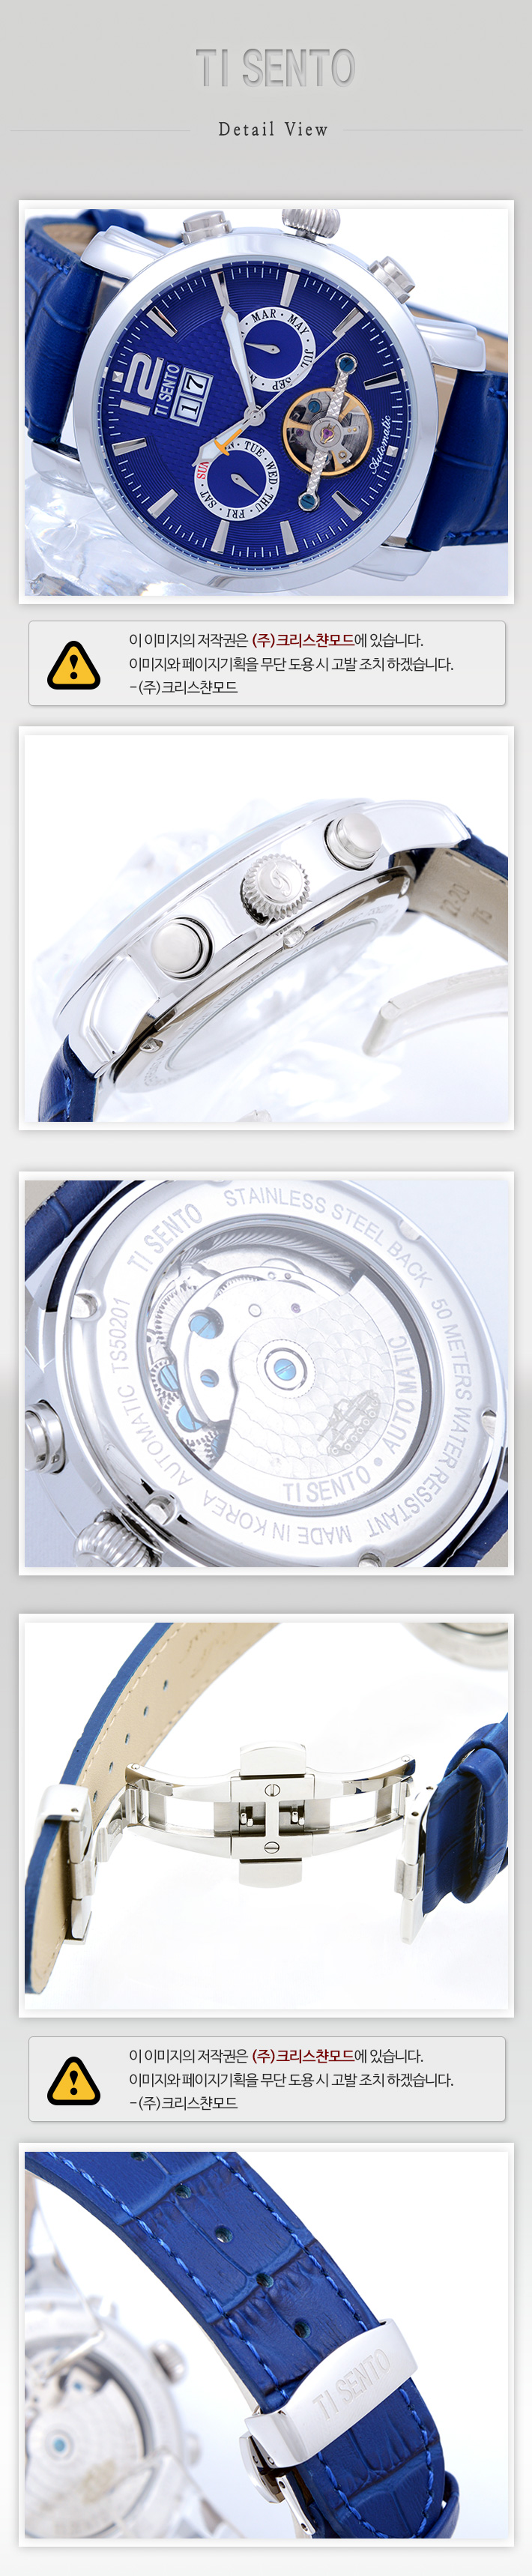 [ TISENTO ] KOREA MADE HIGH QUALITY AUTOMATIC MECHANICAL GENUINE CALF WATERPROOF LEATHER STRAP WATCH TS 50201 BUBU